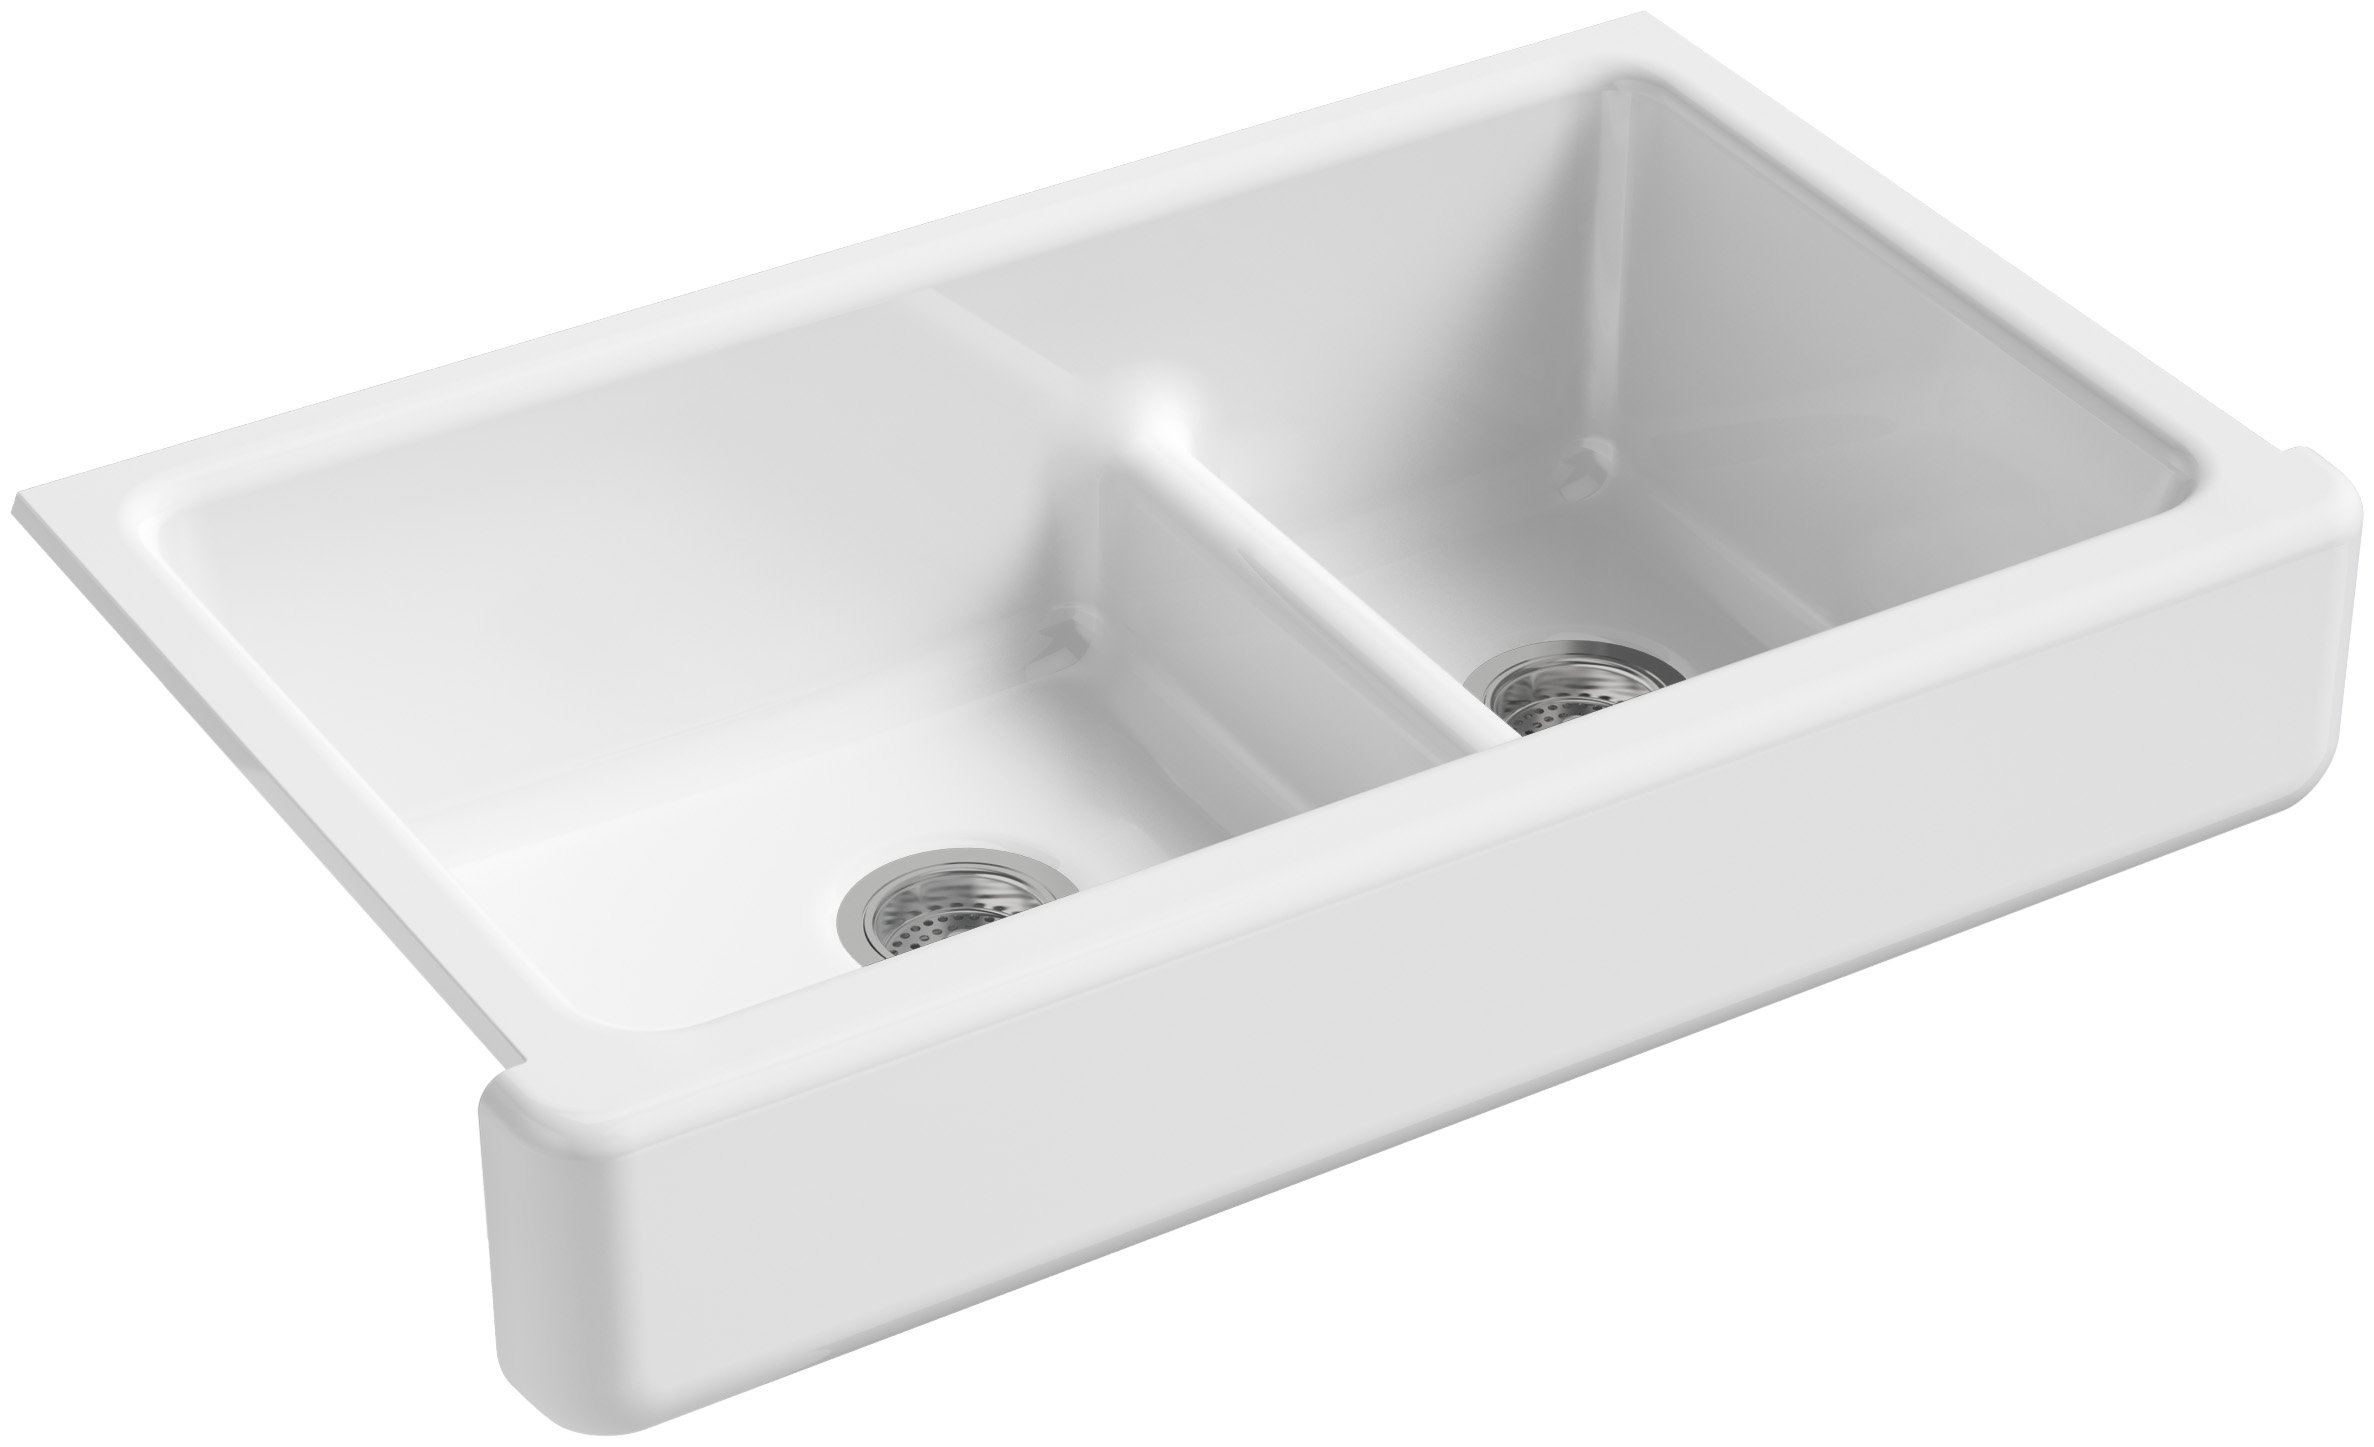 KOHLER K-6426-0 Whitehaven Smart Divide Self-Trimming Under-Mount Apron-Front Double-Bowl Kitchen Sink with Short Apron, 35-1/2-Inch X 21-9/16-Inch X 9-5/8-Inch, White